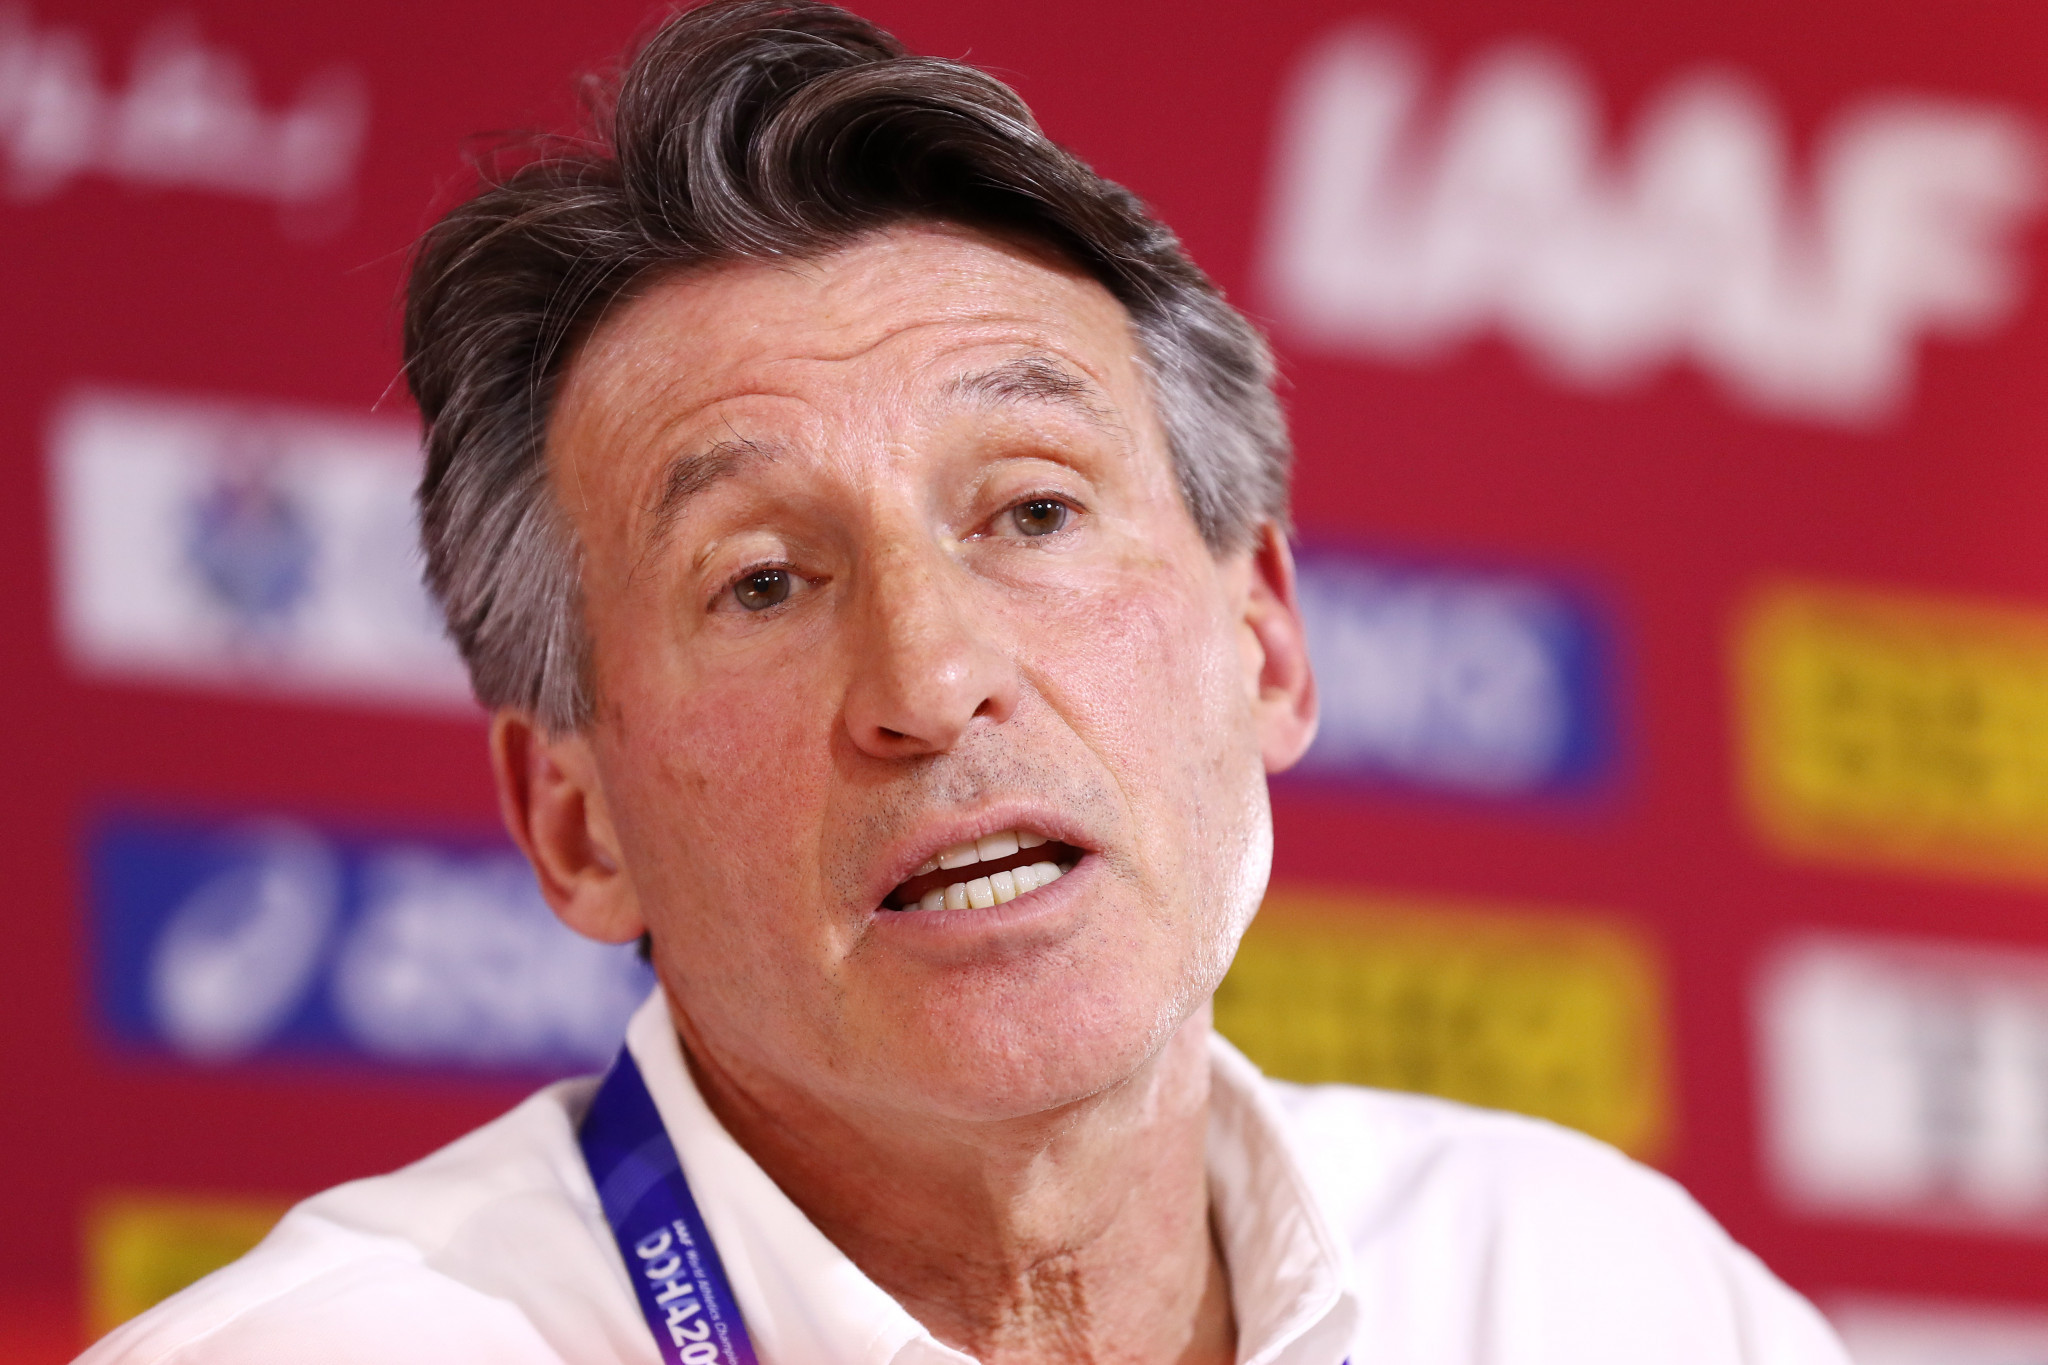 """Coe insists Russian athletes unable to compete at Tokyo 2020 unless """"absolutely comfortable"""" they are clean"""